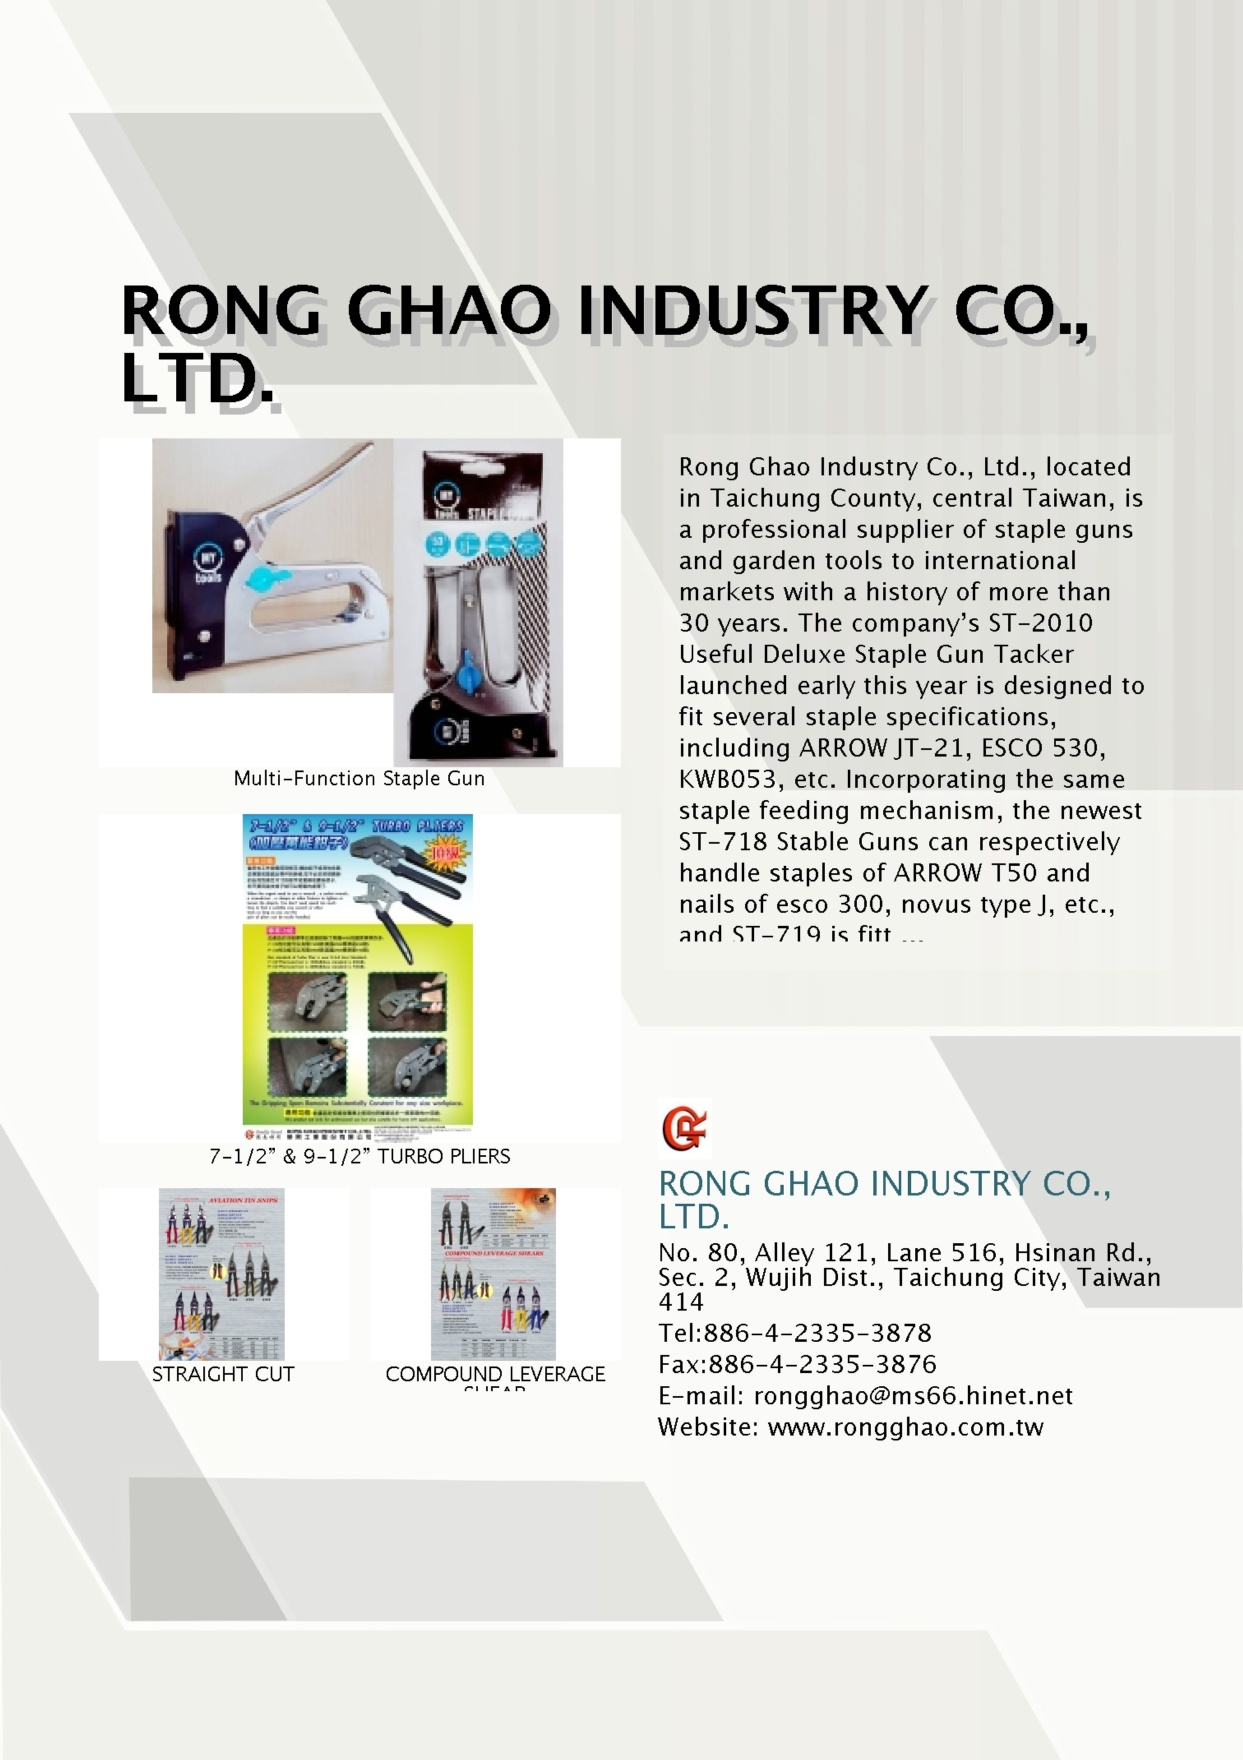 RONG GHAO INDUSTRY CO., LTD.